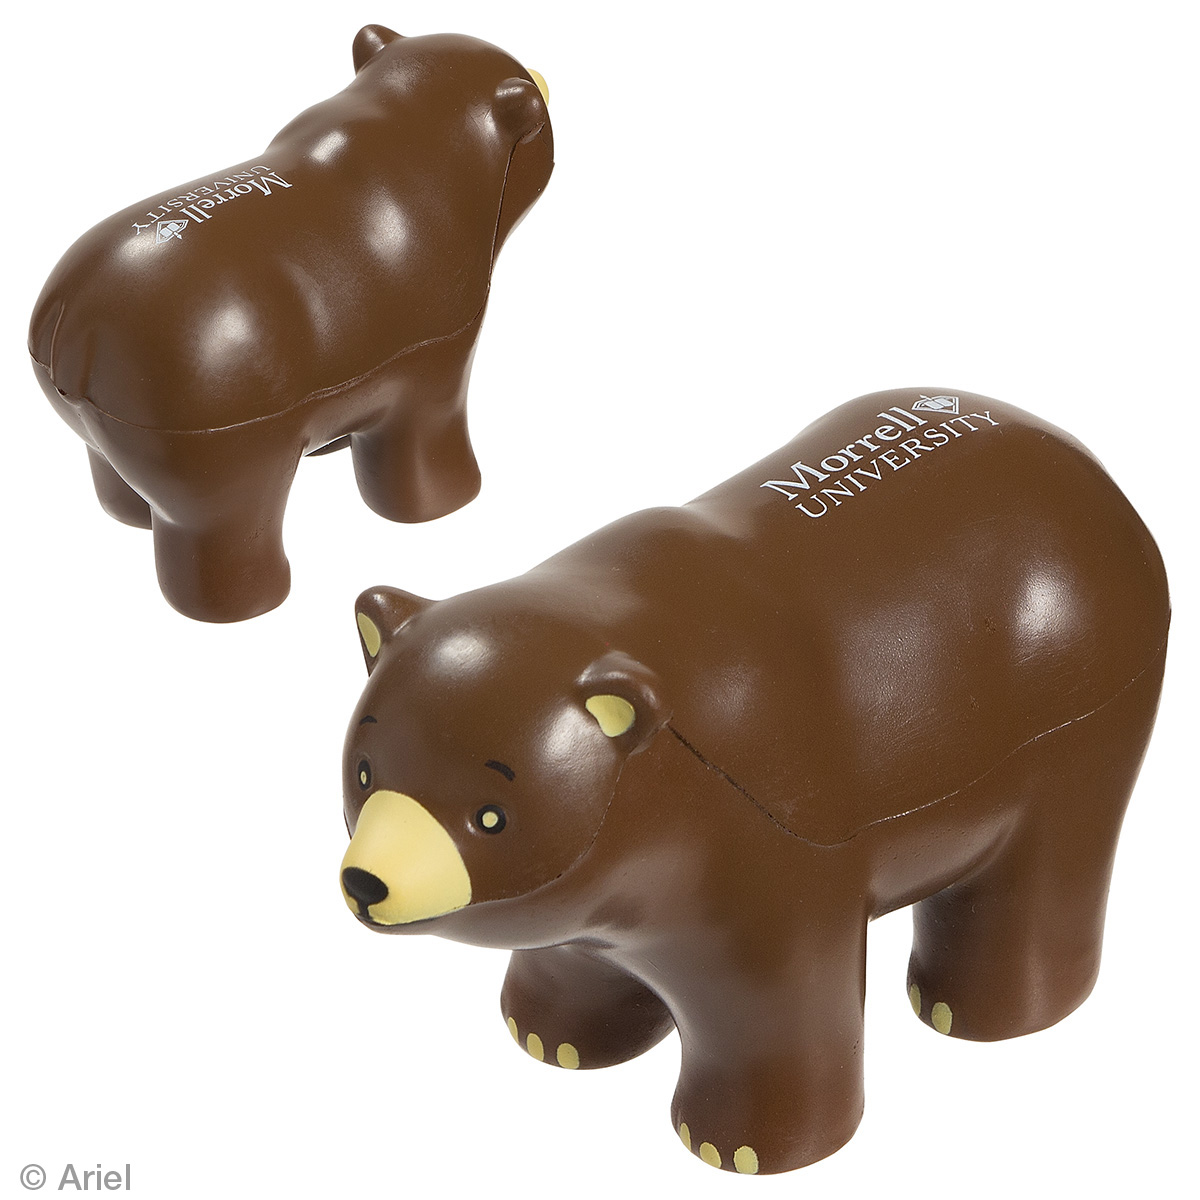 Bear Stress Reliever, LAZ-BR09 - 1 Colour Imprint